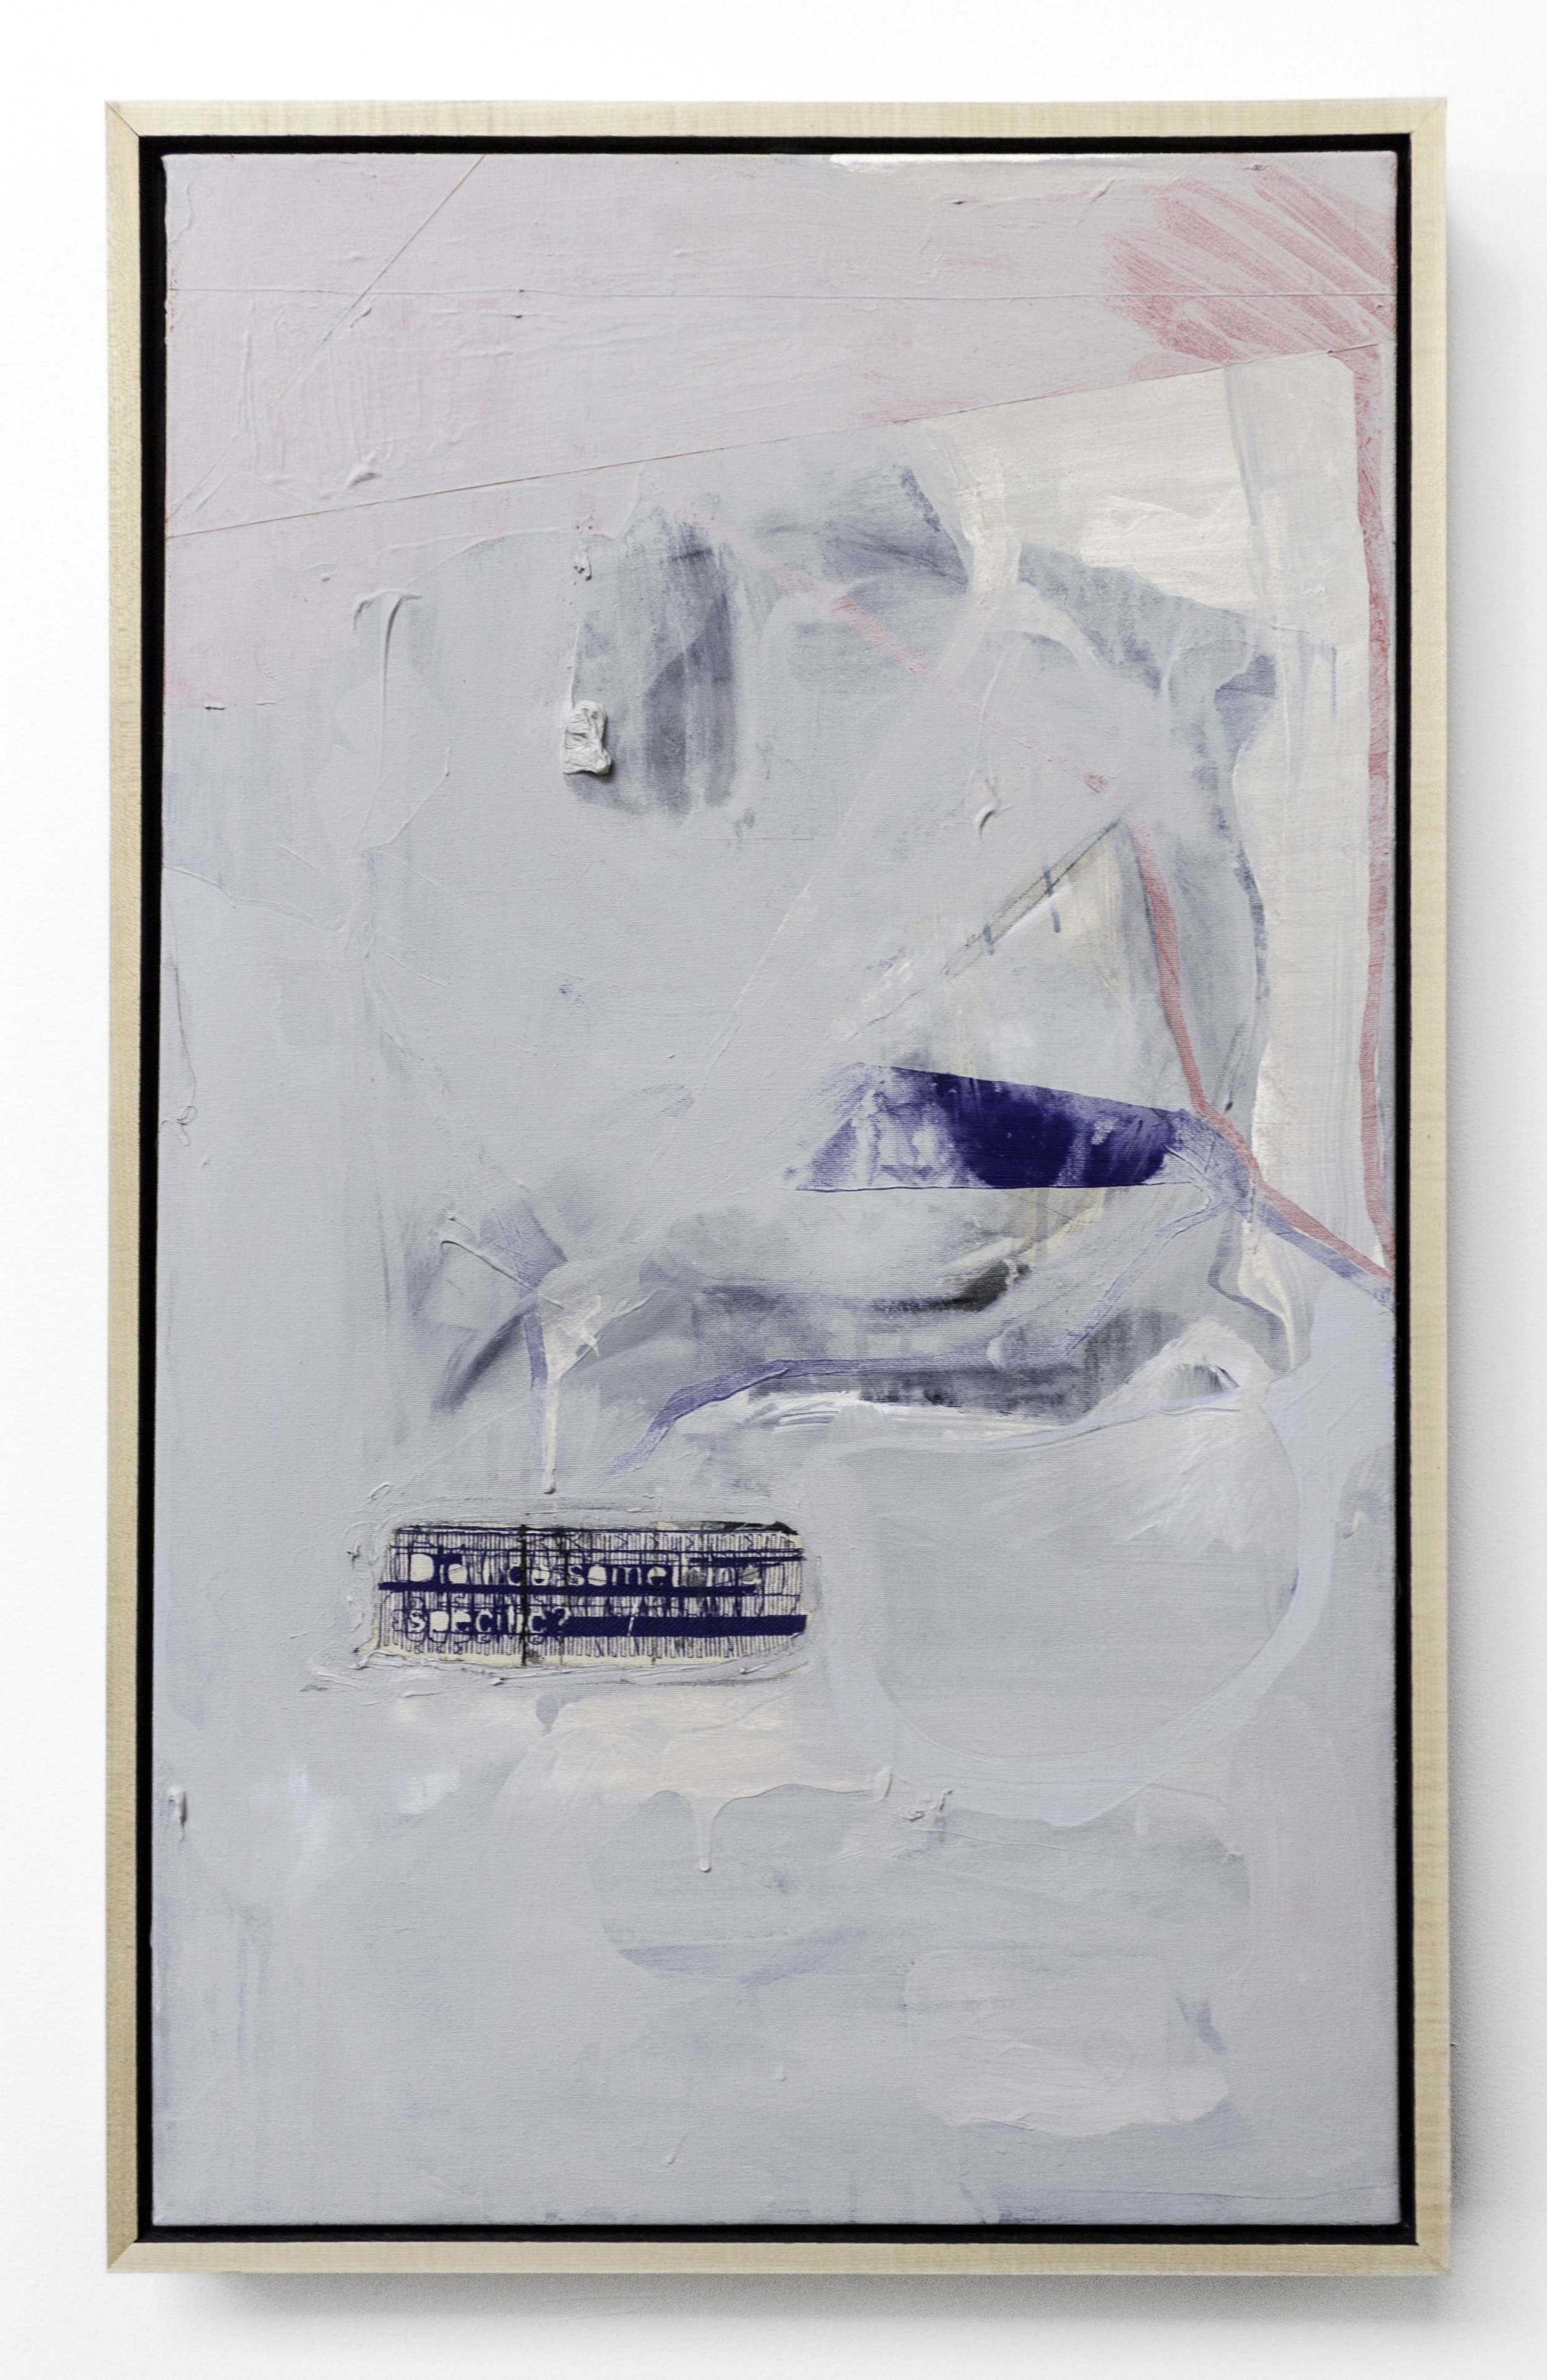 TERRY BOYD | DID I DO SOMETHING SPECIFIC | 36 x 22 in | SOLD